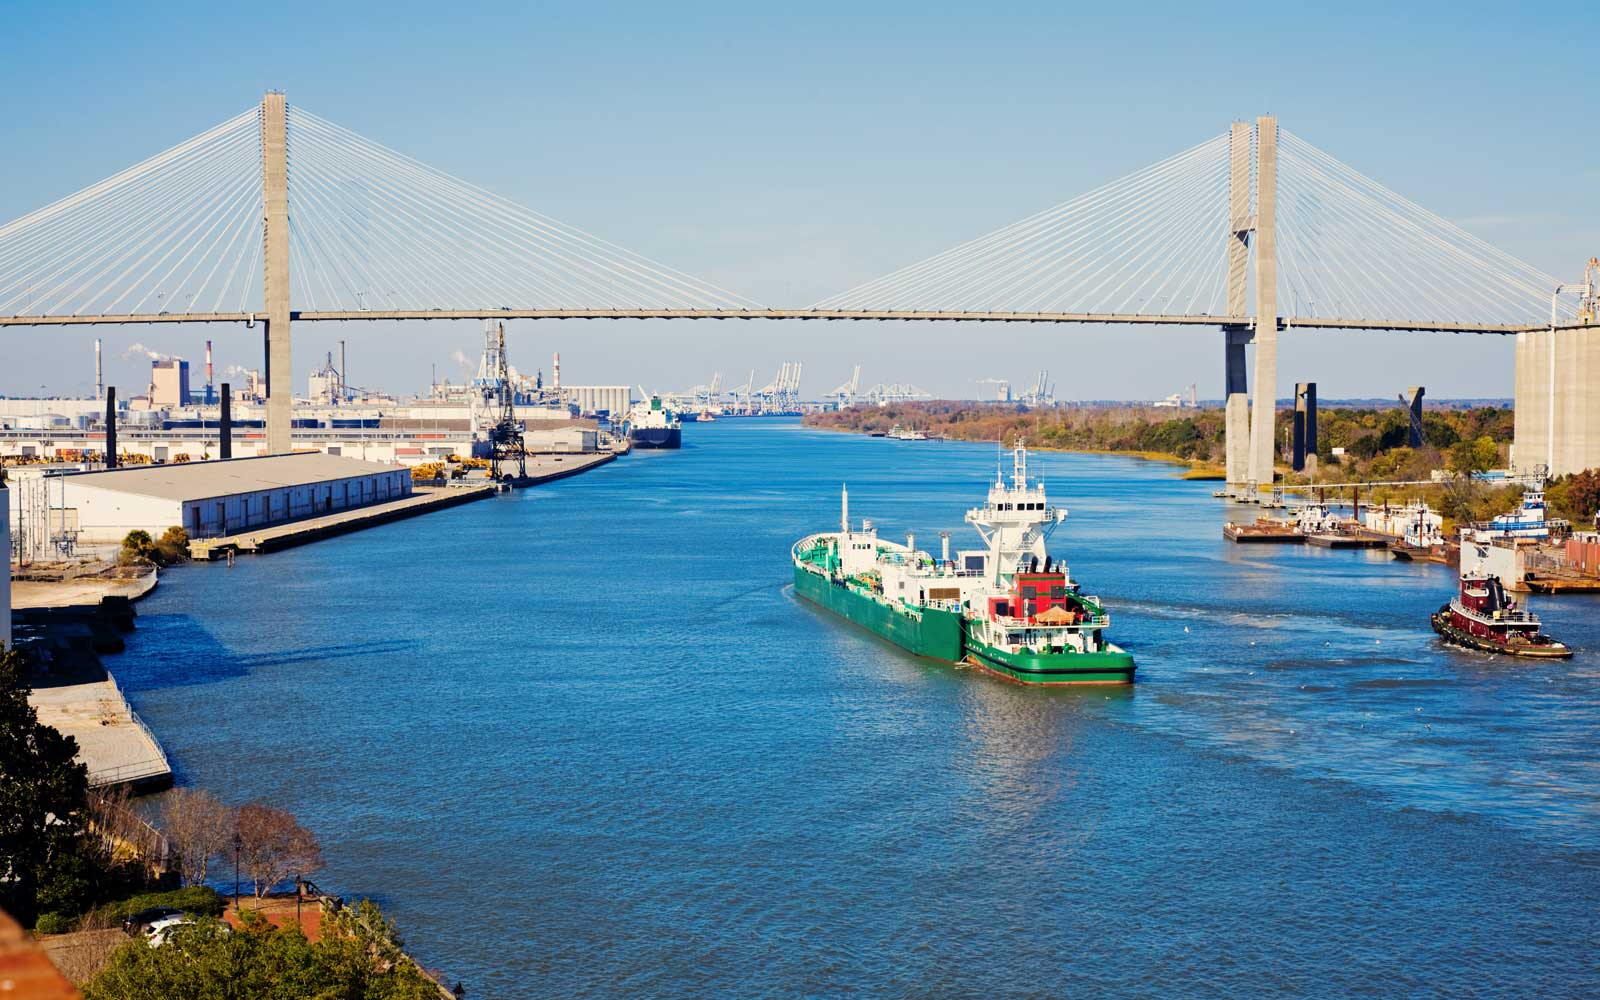 Ship entering port of Savannah - Talmadge Memorial Bridge